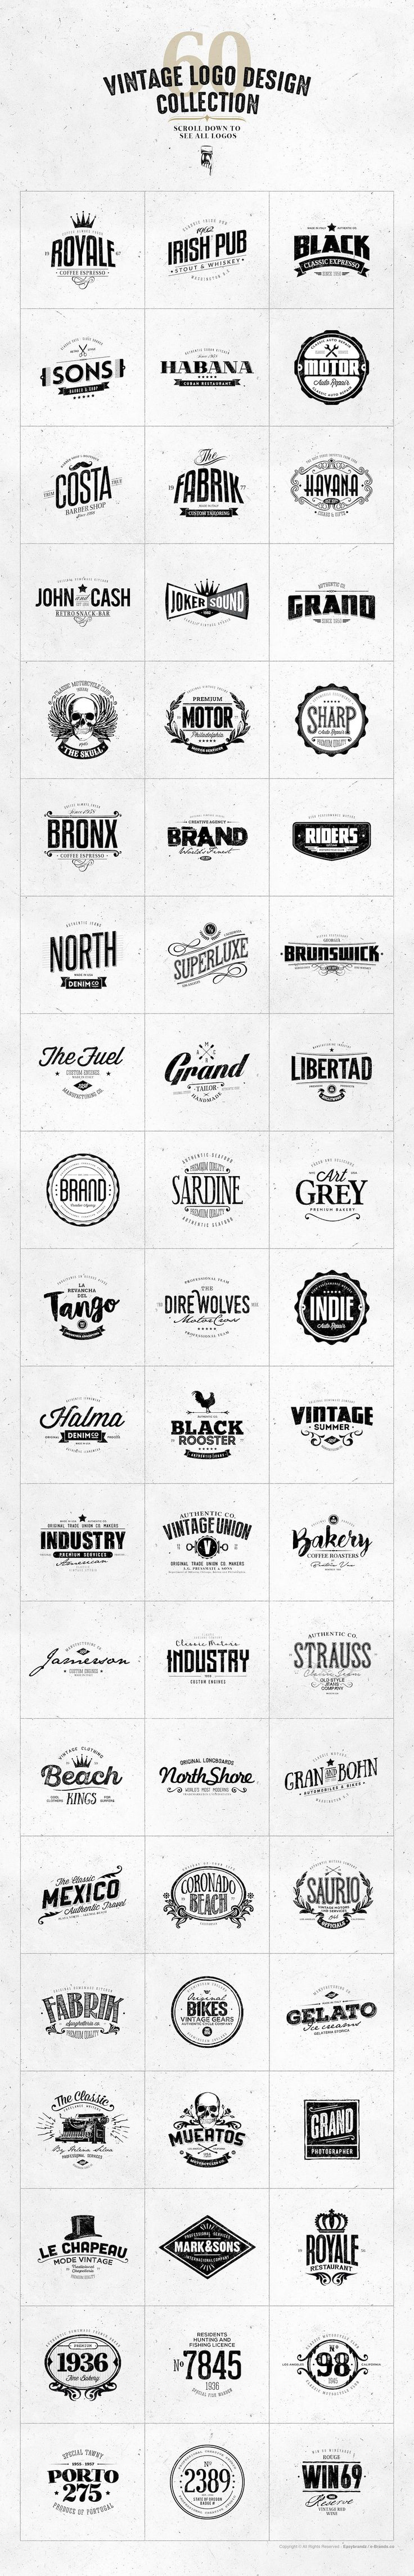 60 Vintage Logo Design Collection by Easybrandz on Creative Market